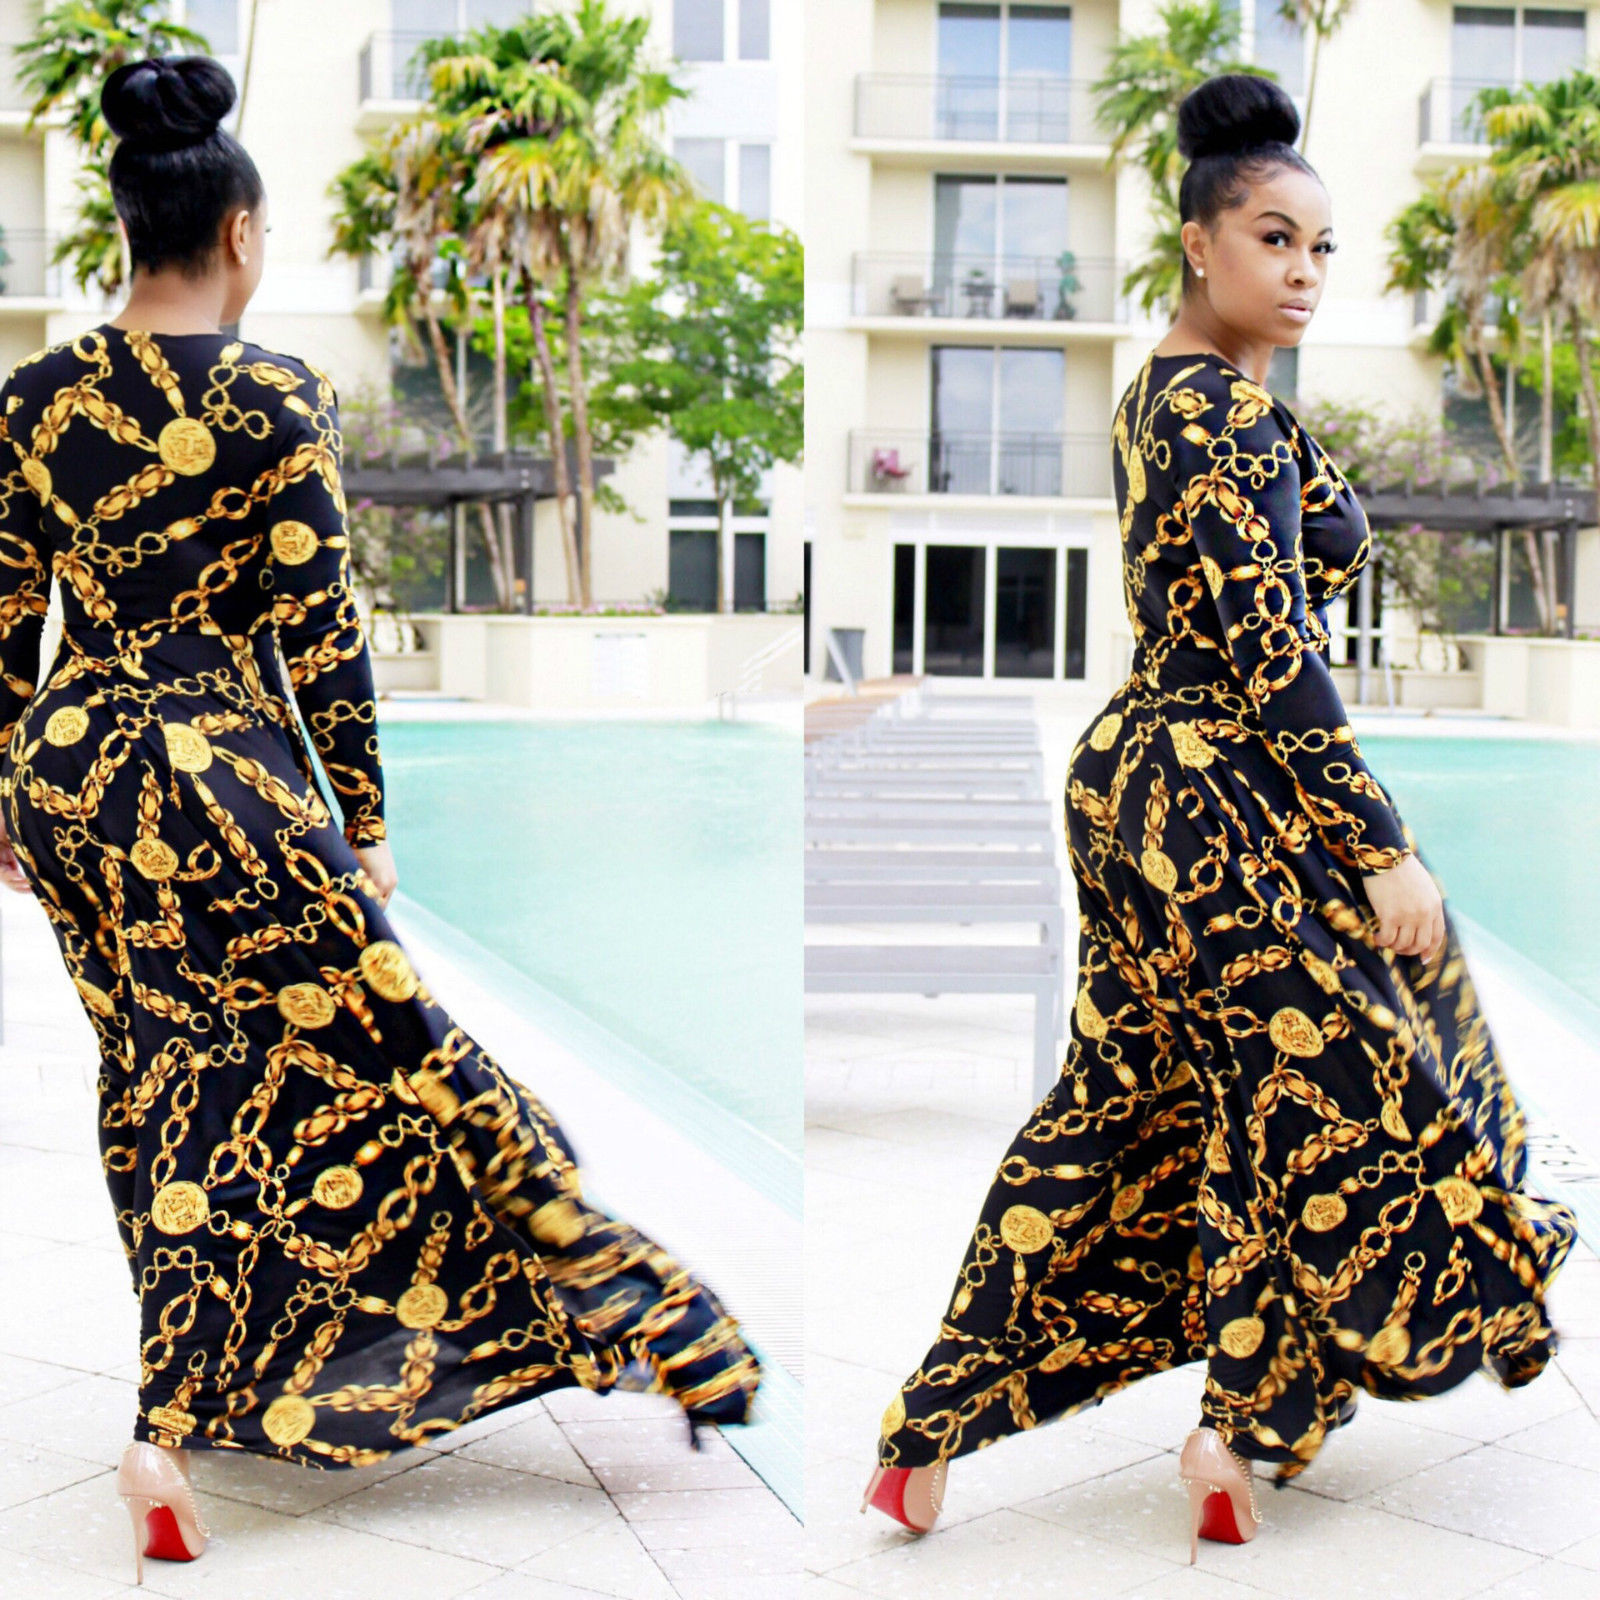 917281e23d931 OFF SHOULDER AFRICAN DASHIKI PRINT MAXI DRESS *SOLD OUT ...